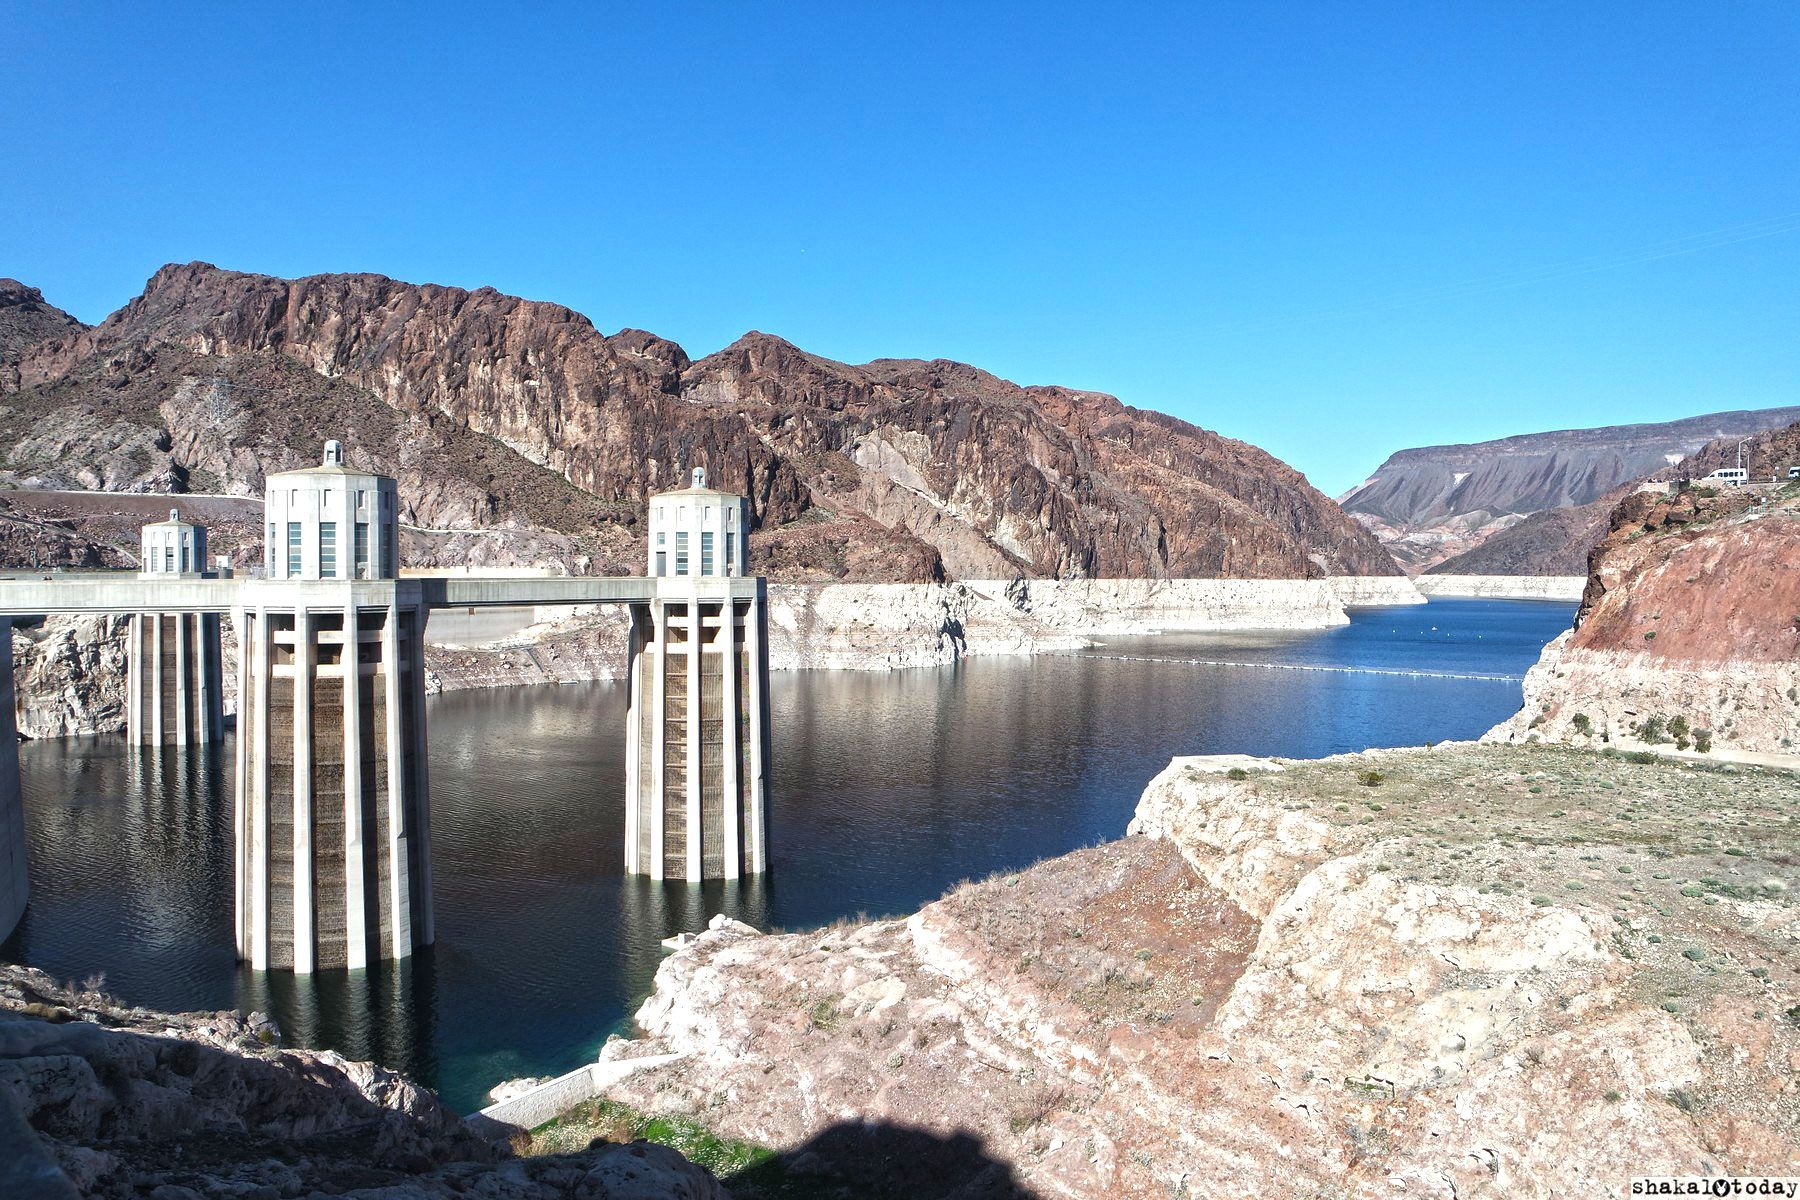 Shakal-Today-Hoover-Dam-0023.JPG